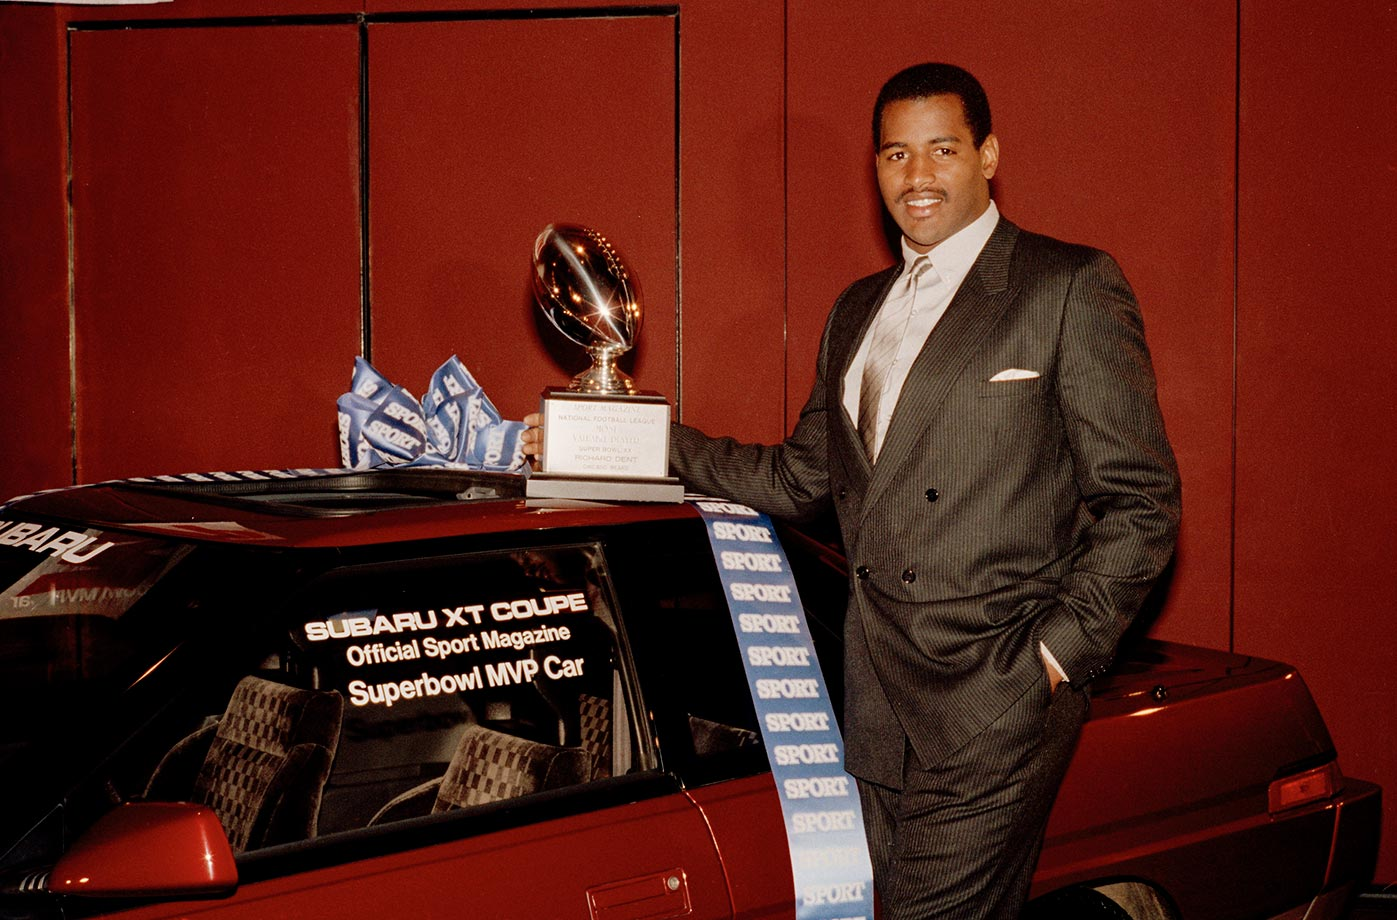 Chicago Bears lineman Richard Dent poses with his trophy and the car awarded to him as the Super Bowl's Most Valuable Player.